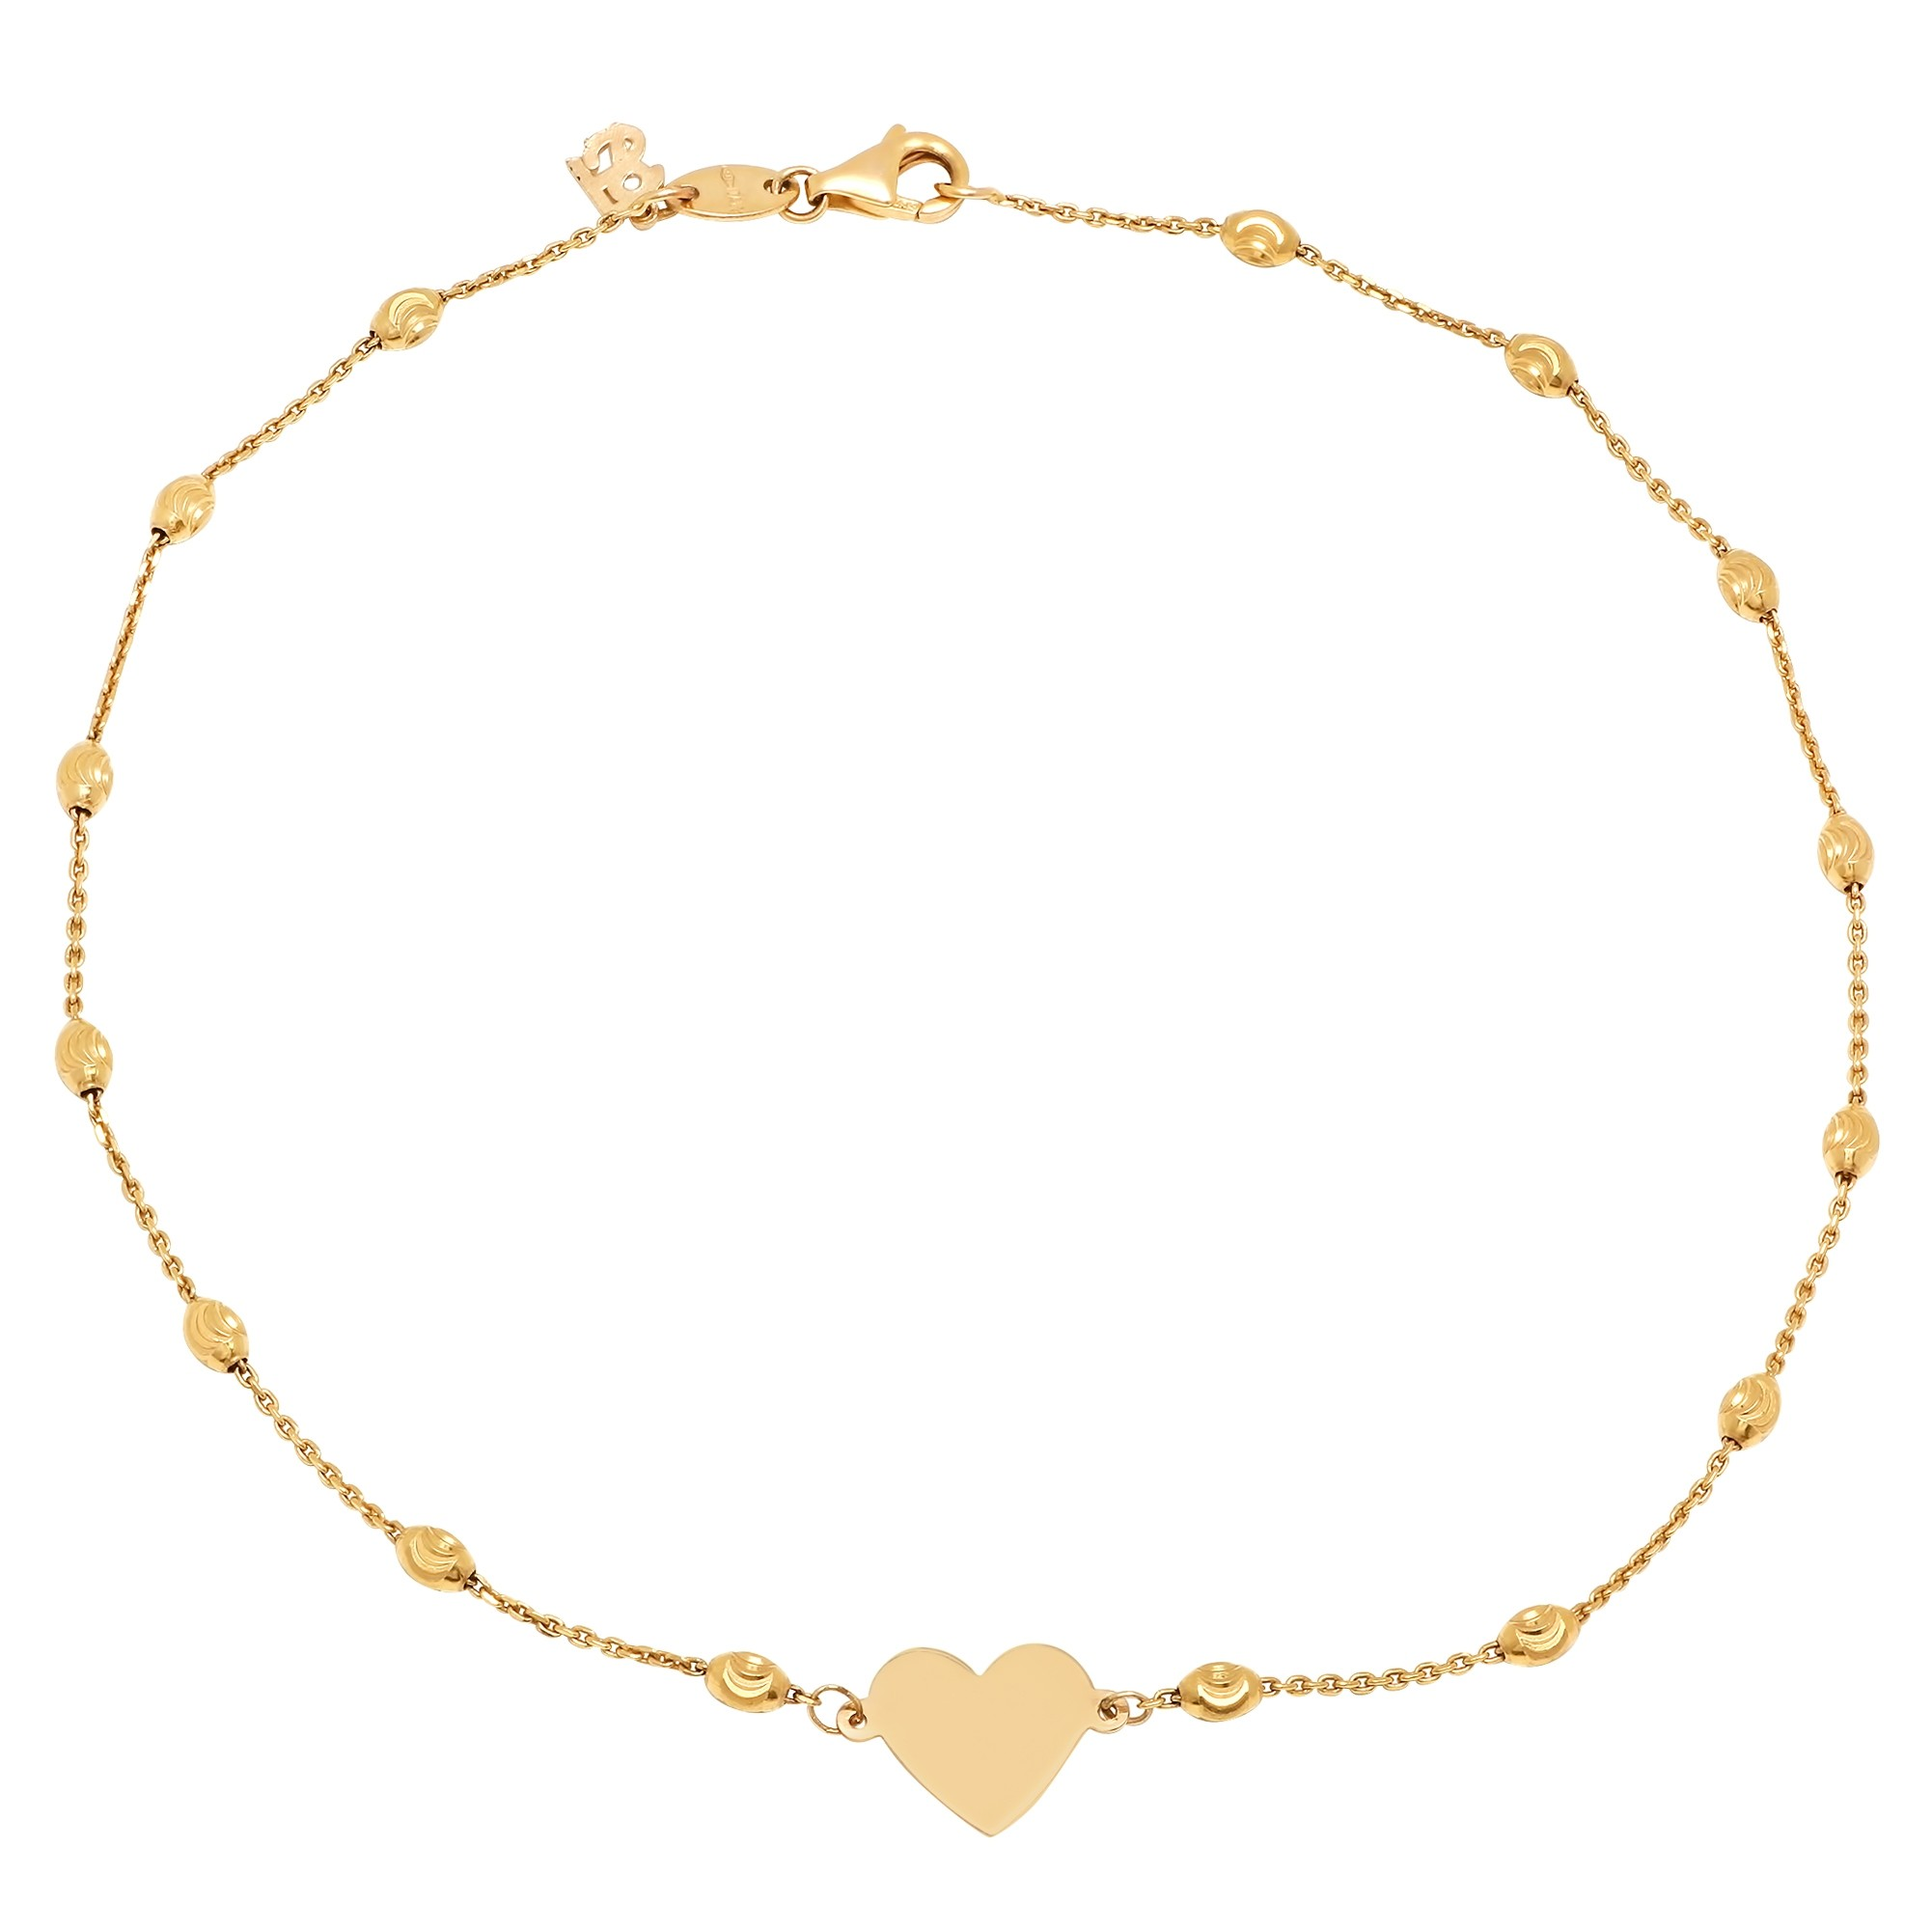 14k Yellow Gold Floating Heart Beaded Chain Anklet